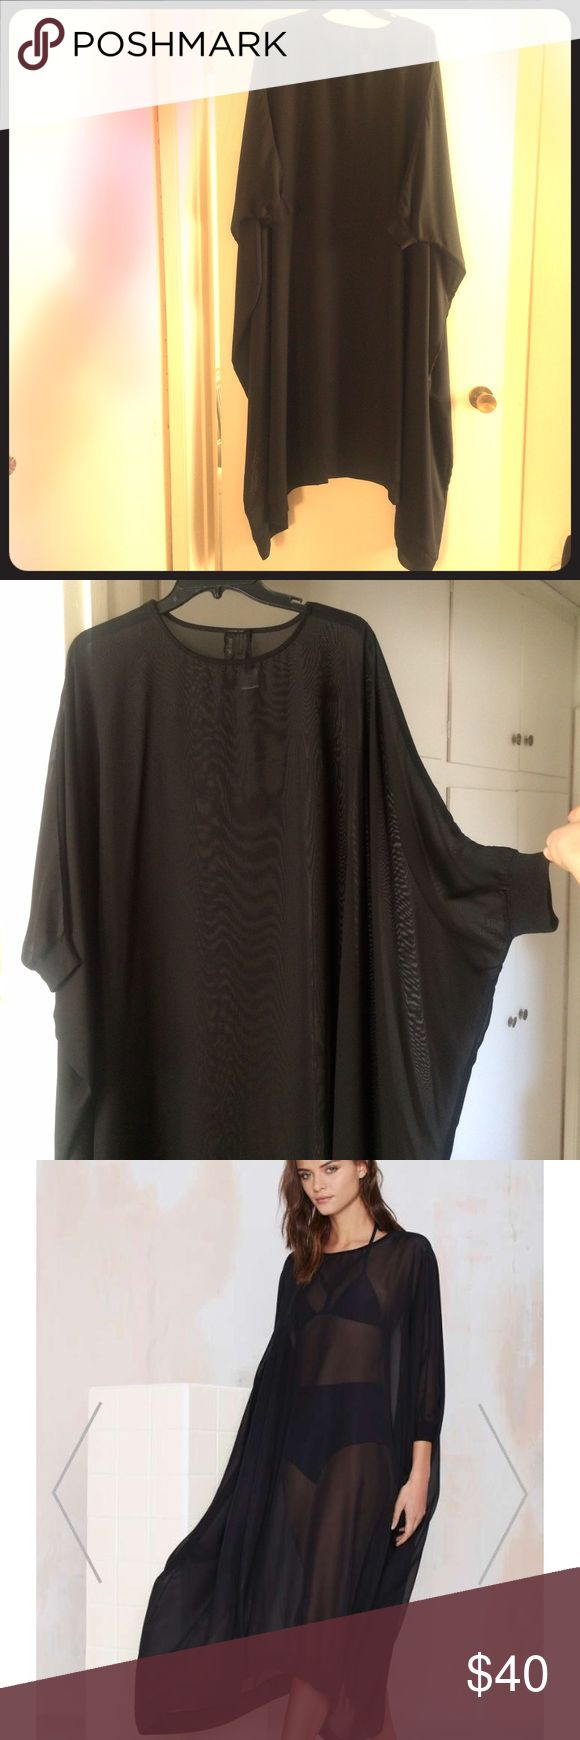 Nasty Gal sheer swim cover up NWOT. This sexy cover up features dolman sleeves, an oversized maxi silhouette, and ribbing at the neck, cuffs, and hem. Perfect for the pool, or to wear with hot pants and a leather bra top. 100% polyester Nasty Gal Swim Coverups